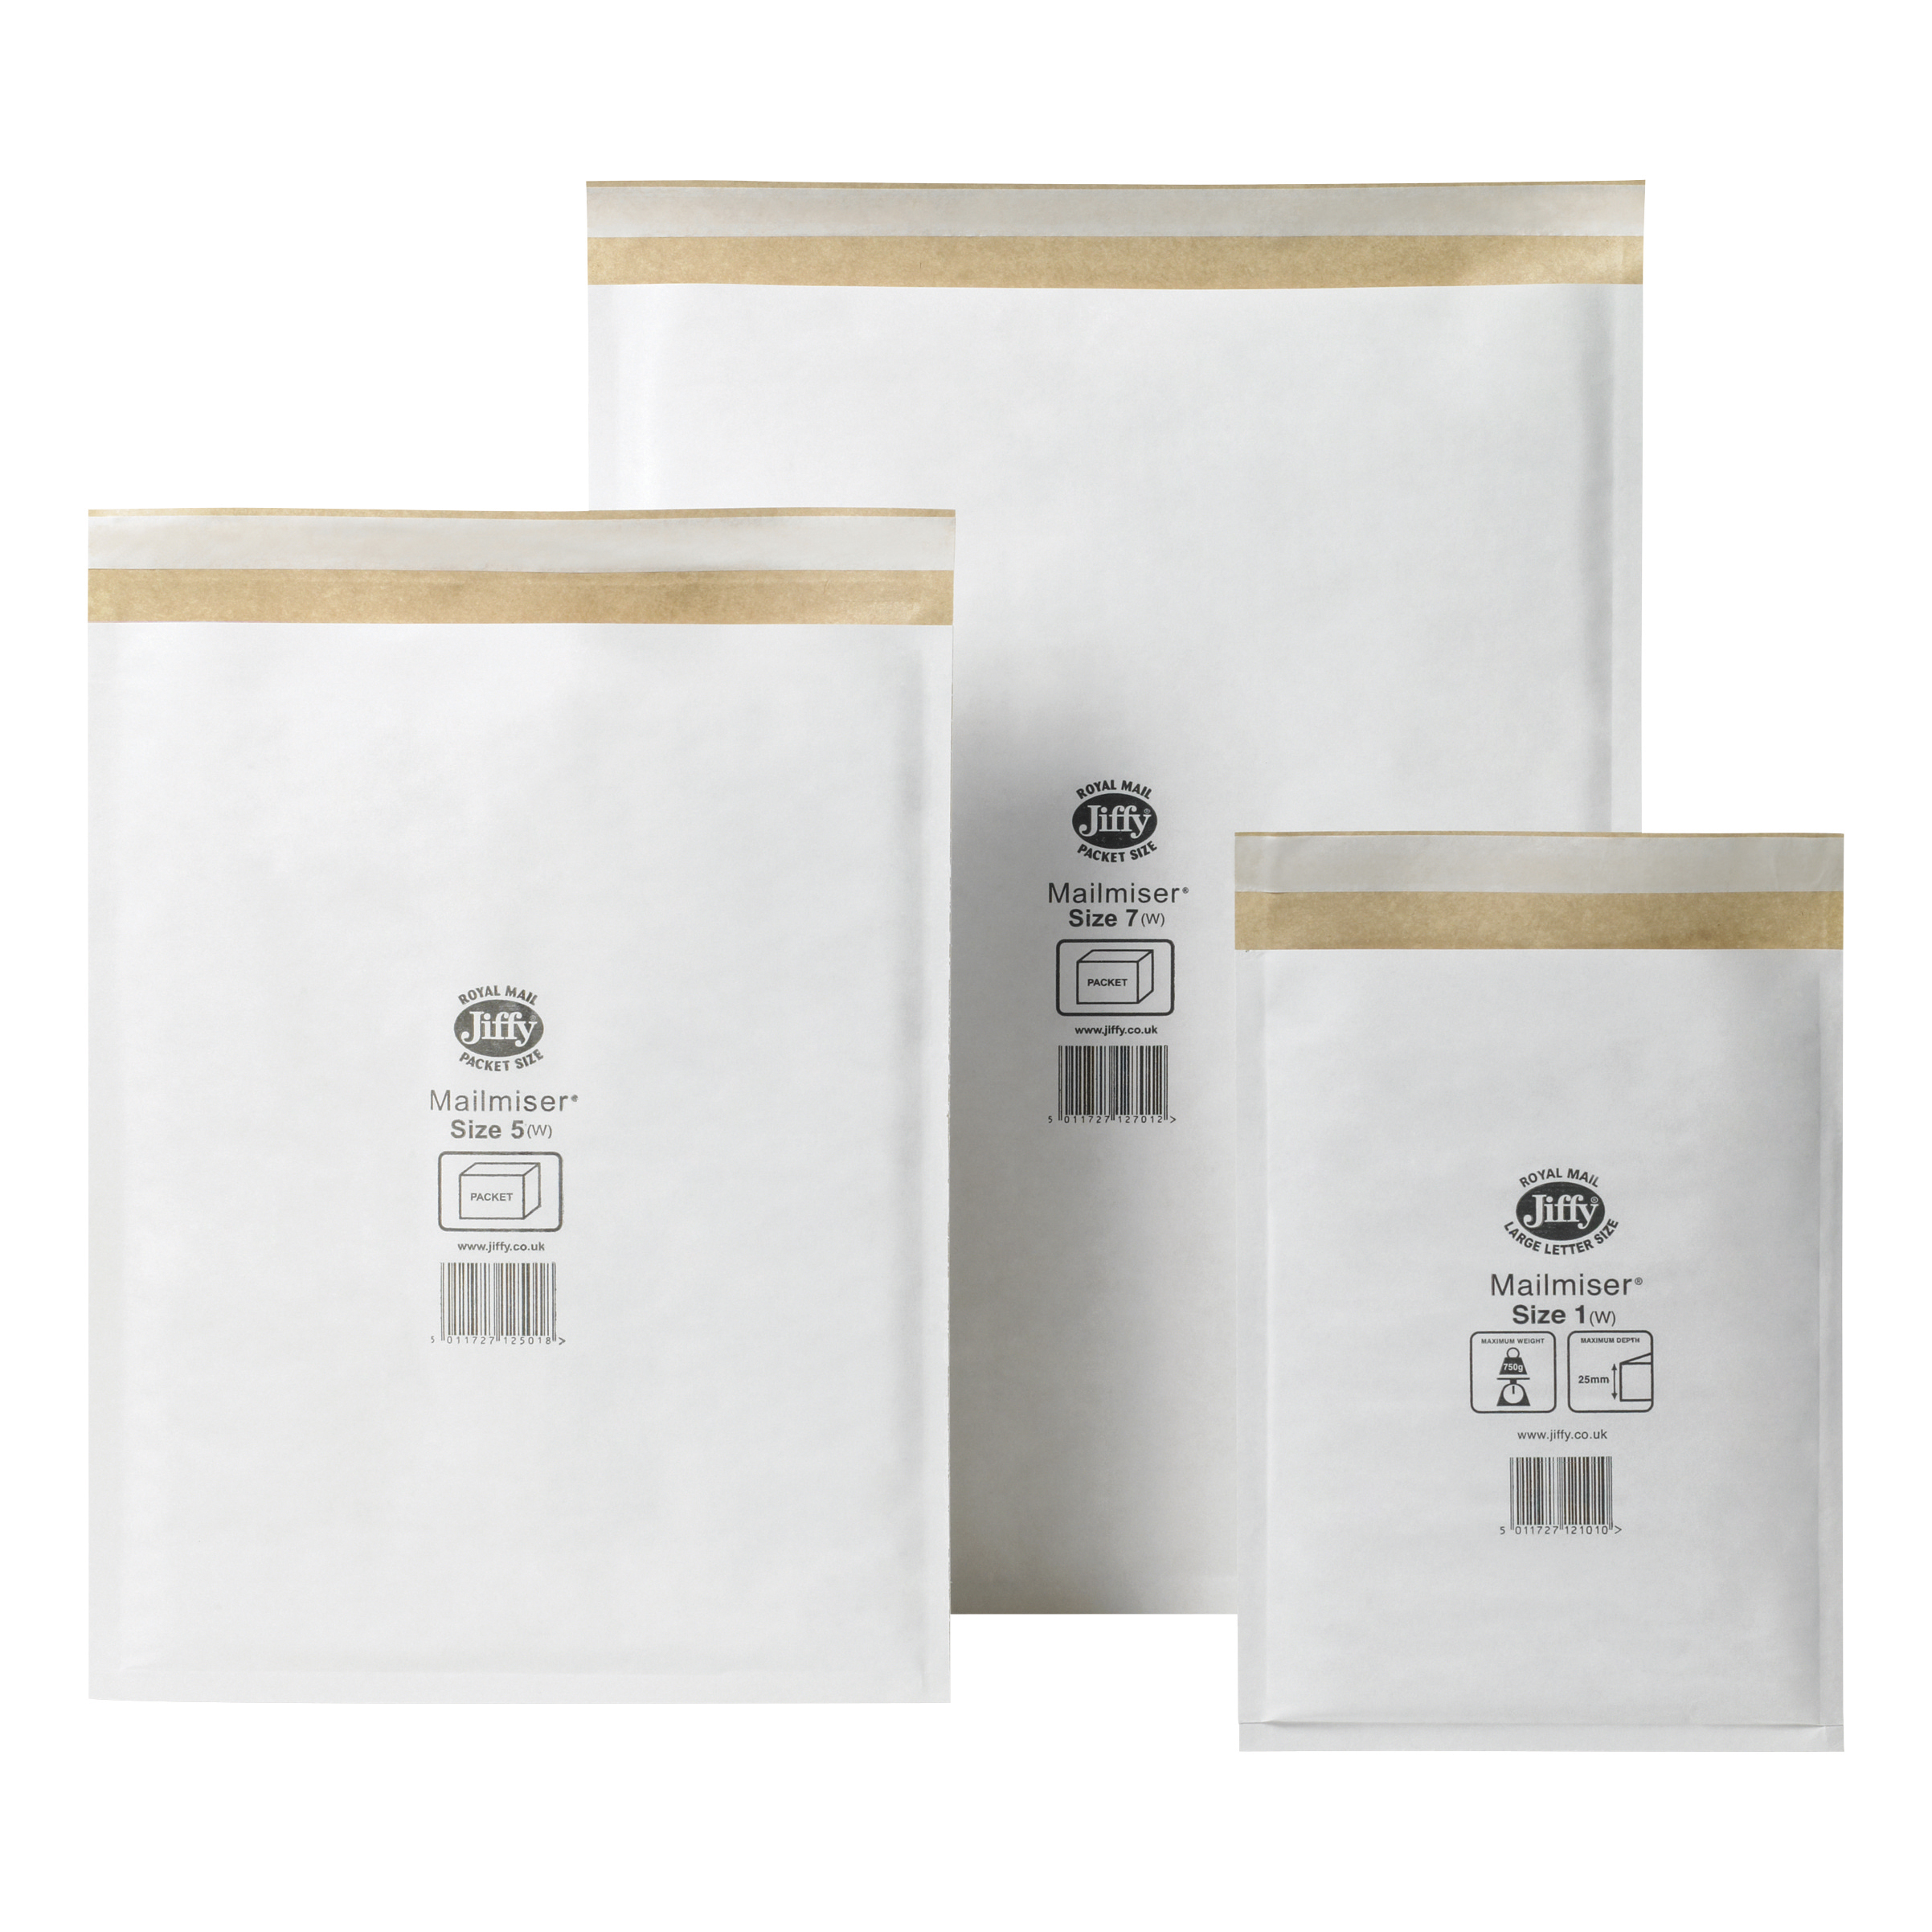 Jiffy Mailmiser Protective Envelopes Bubble-lined Size 7 White 340x445mm Ref JMM-WH-7 [Pack 50]